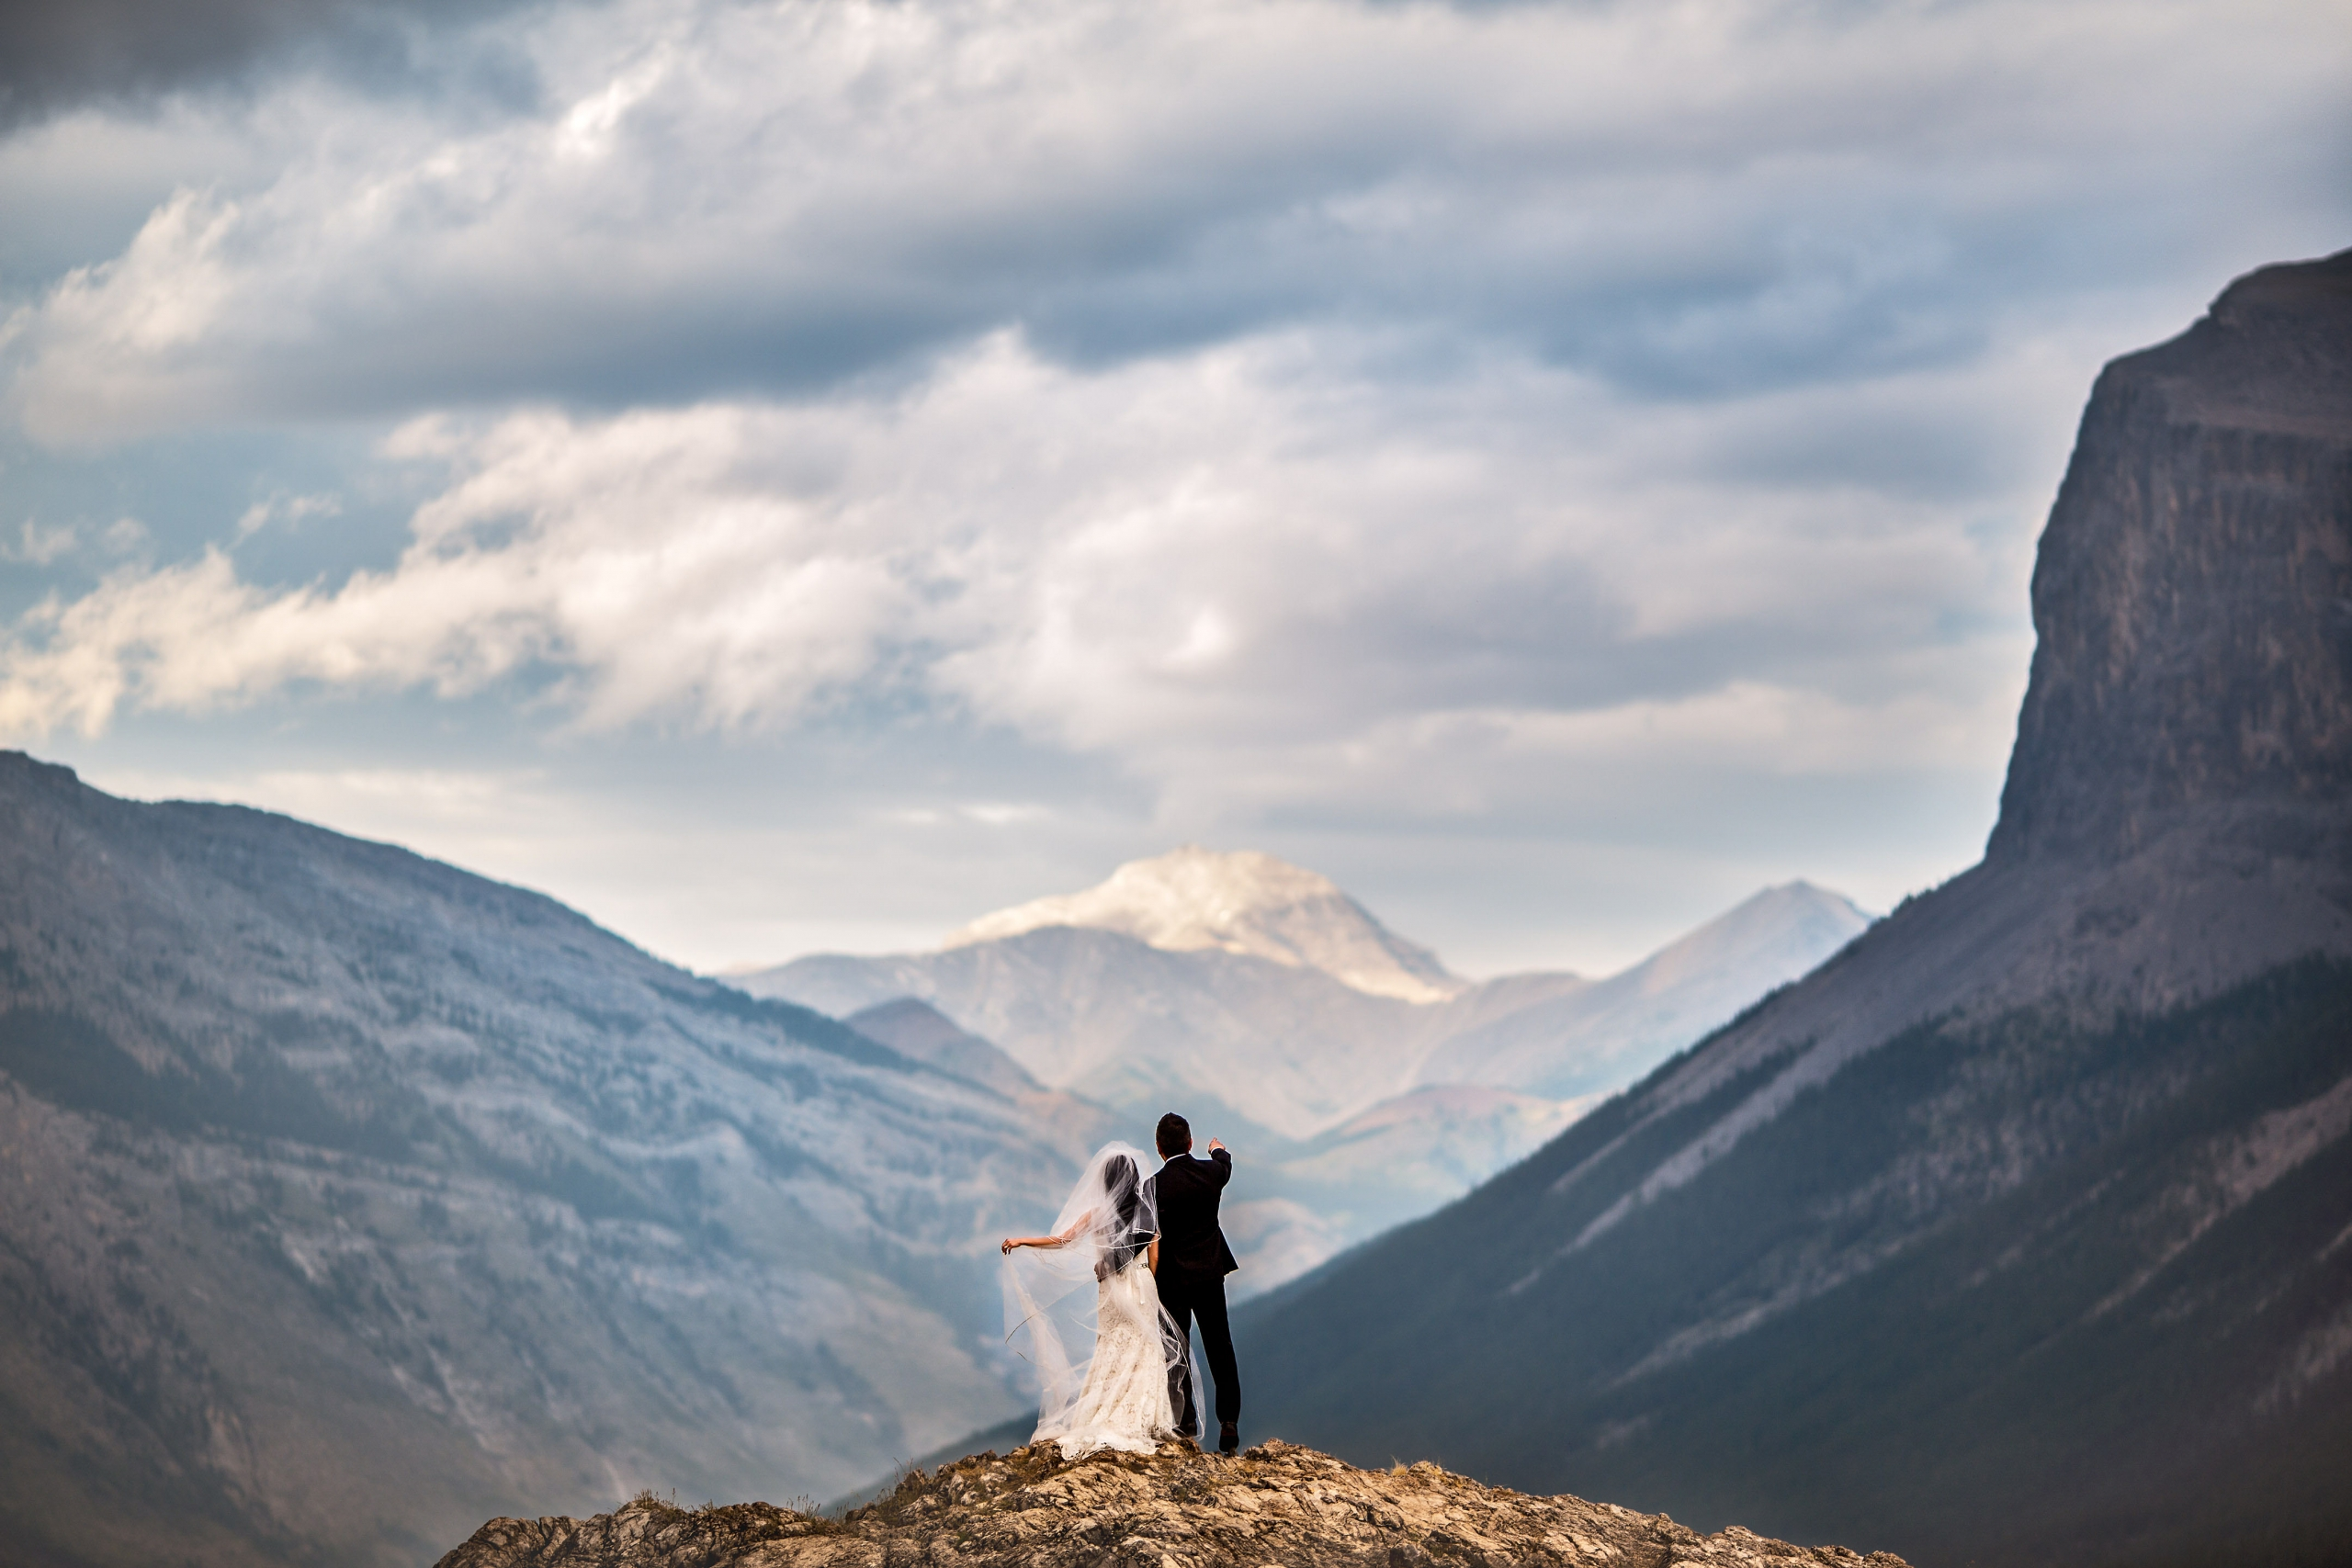 Bride in wedding dress and groom pointing ahead at mountains in the distance